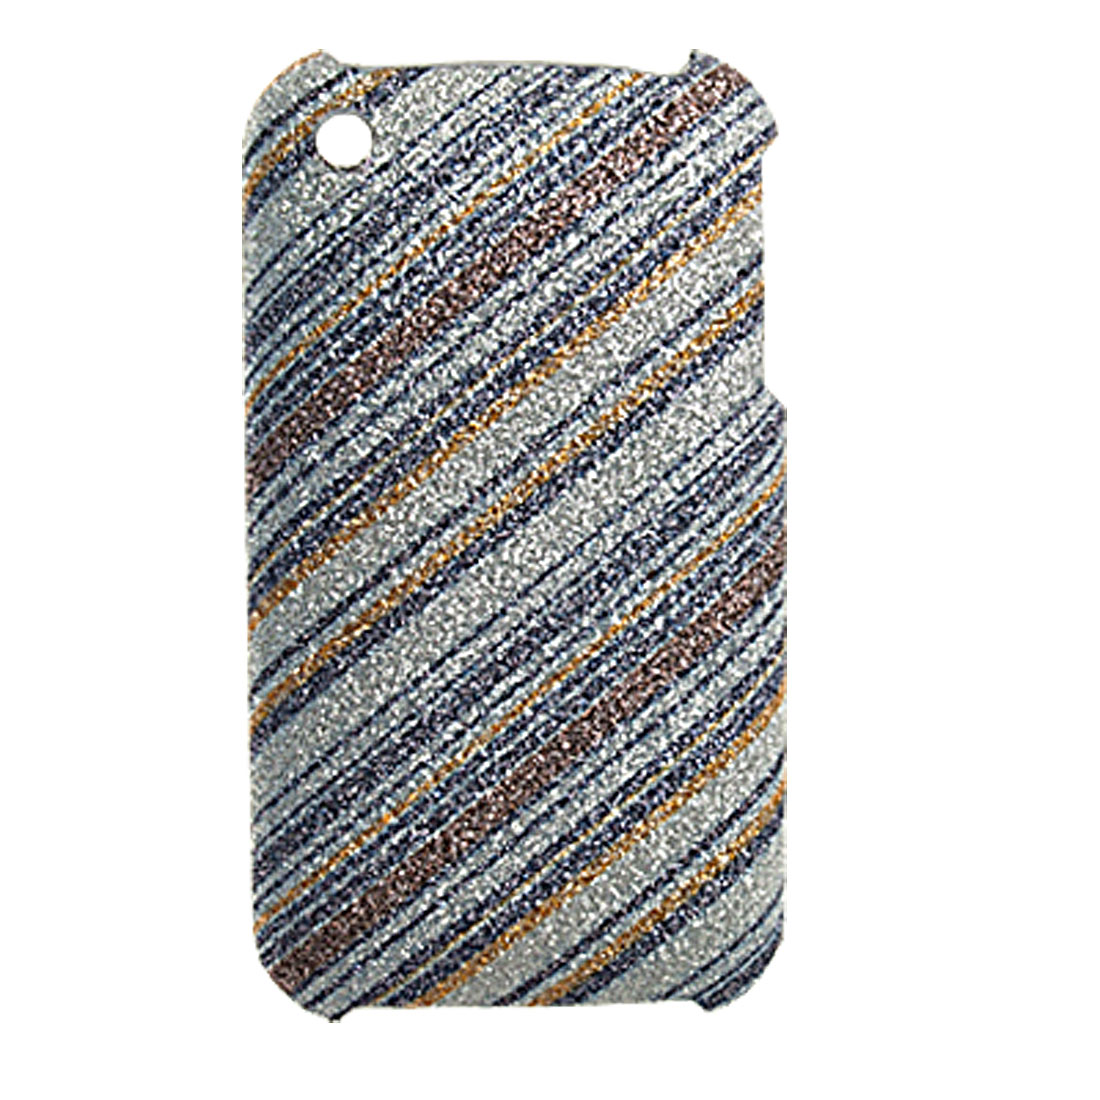 Glittery Plastic Leather Coated Back Case for iPhone 3GS